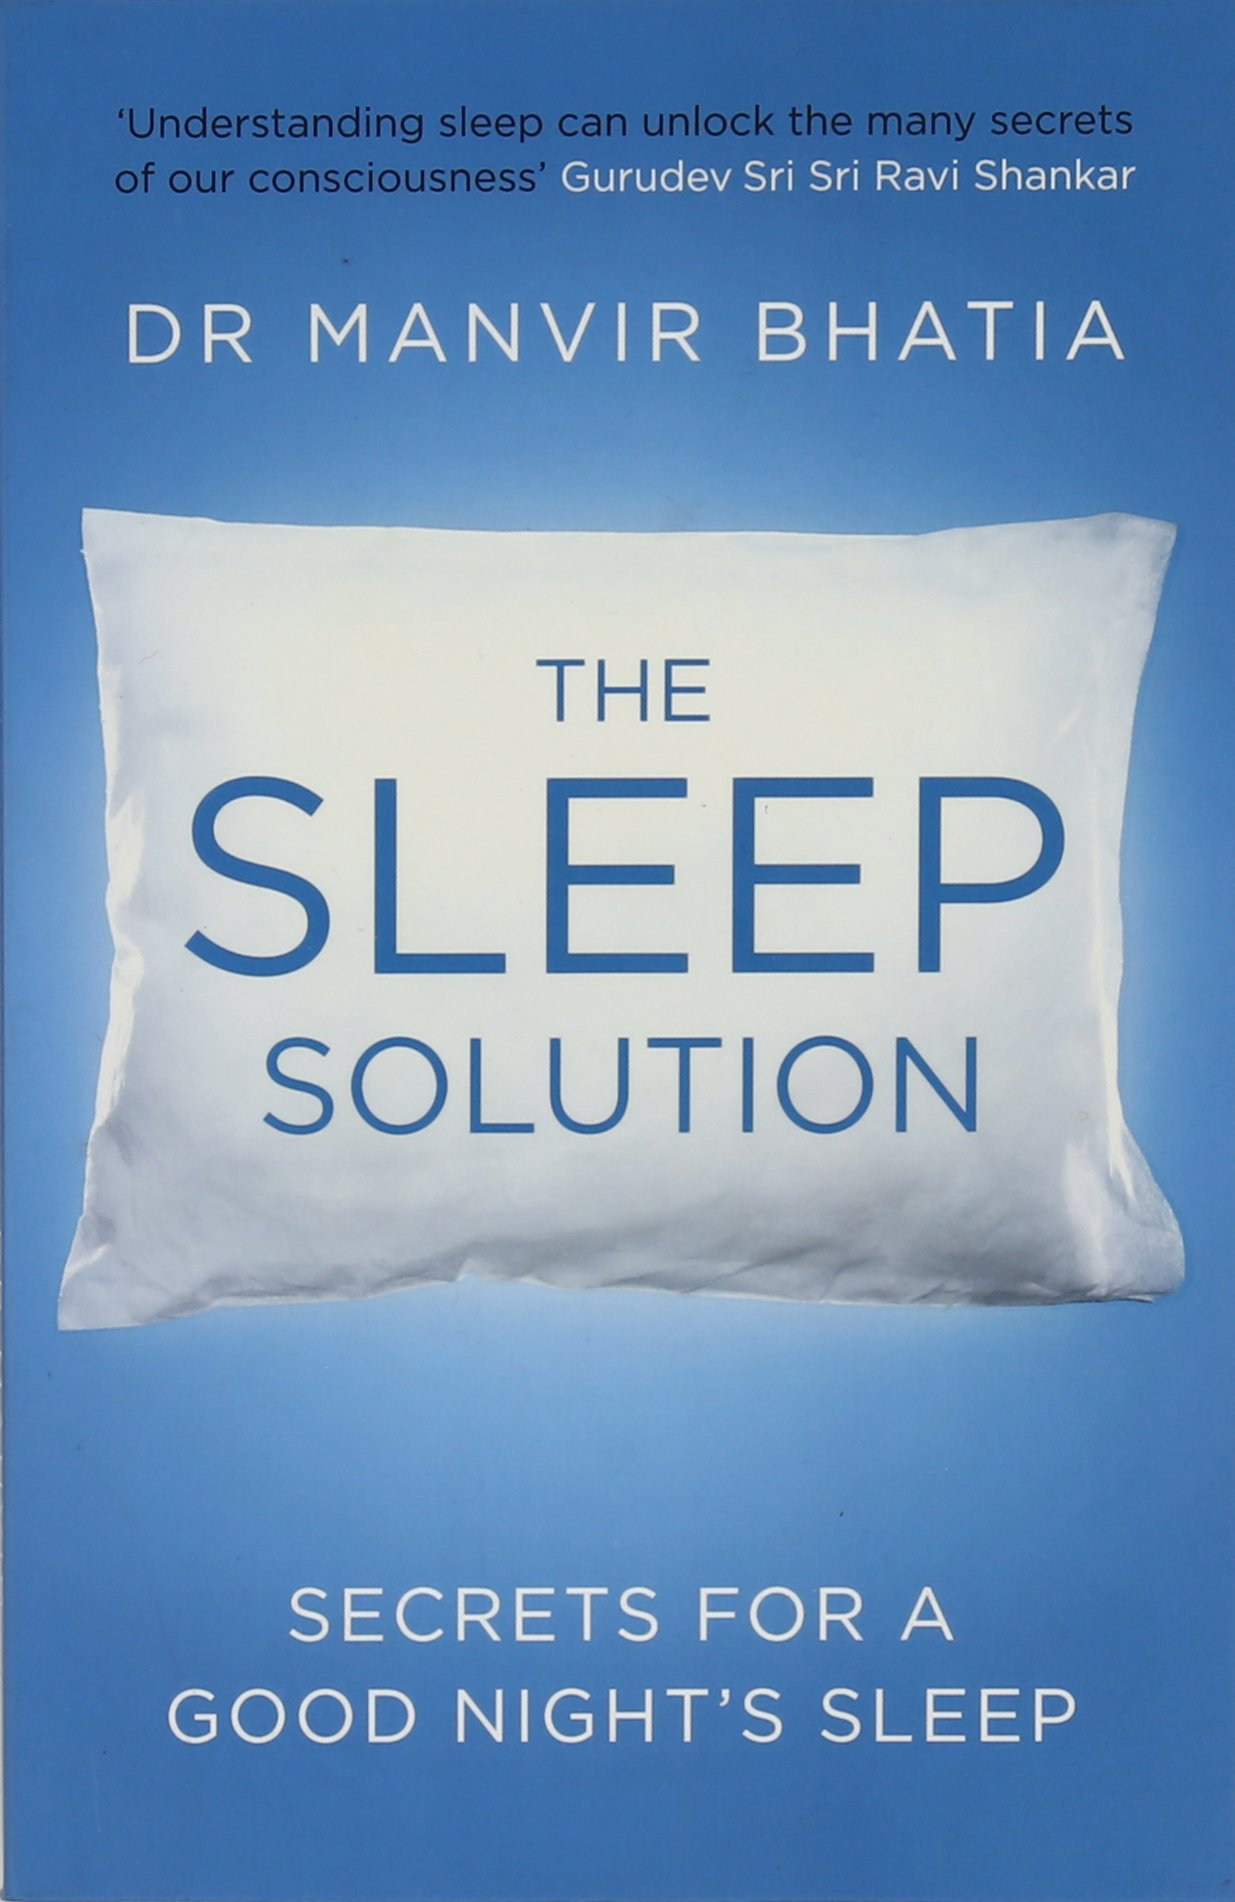 Buy The Sleep Solution: Secrets for a Good Night's Sleep Book Online